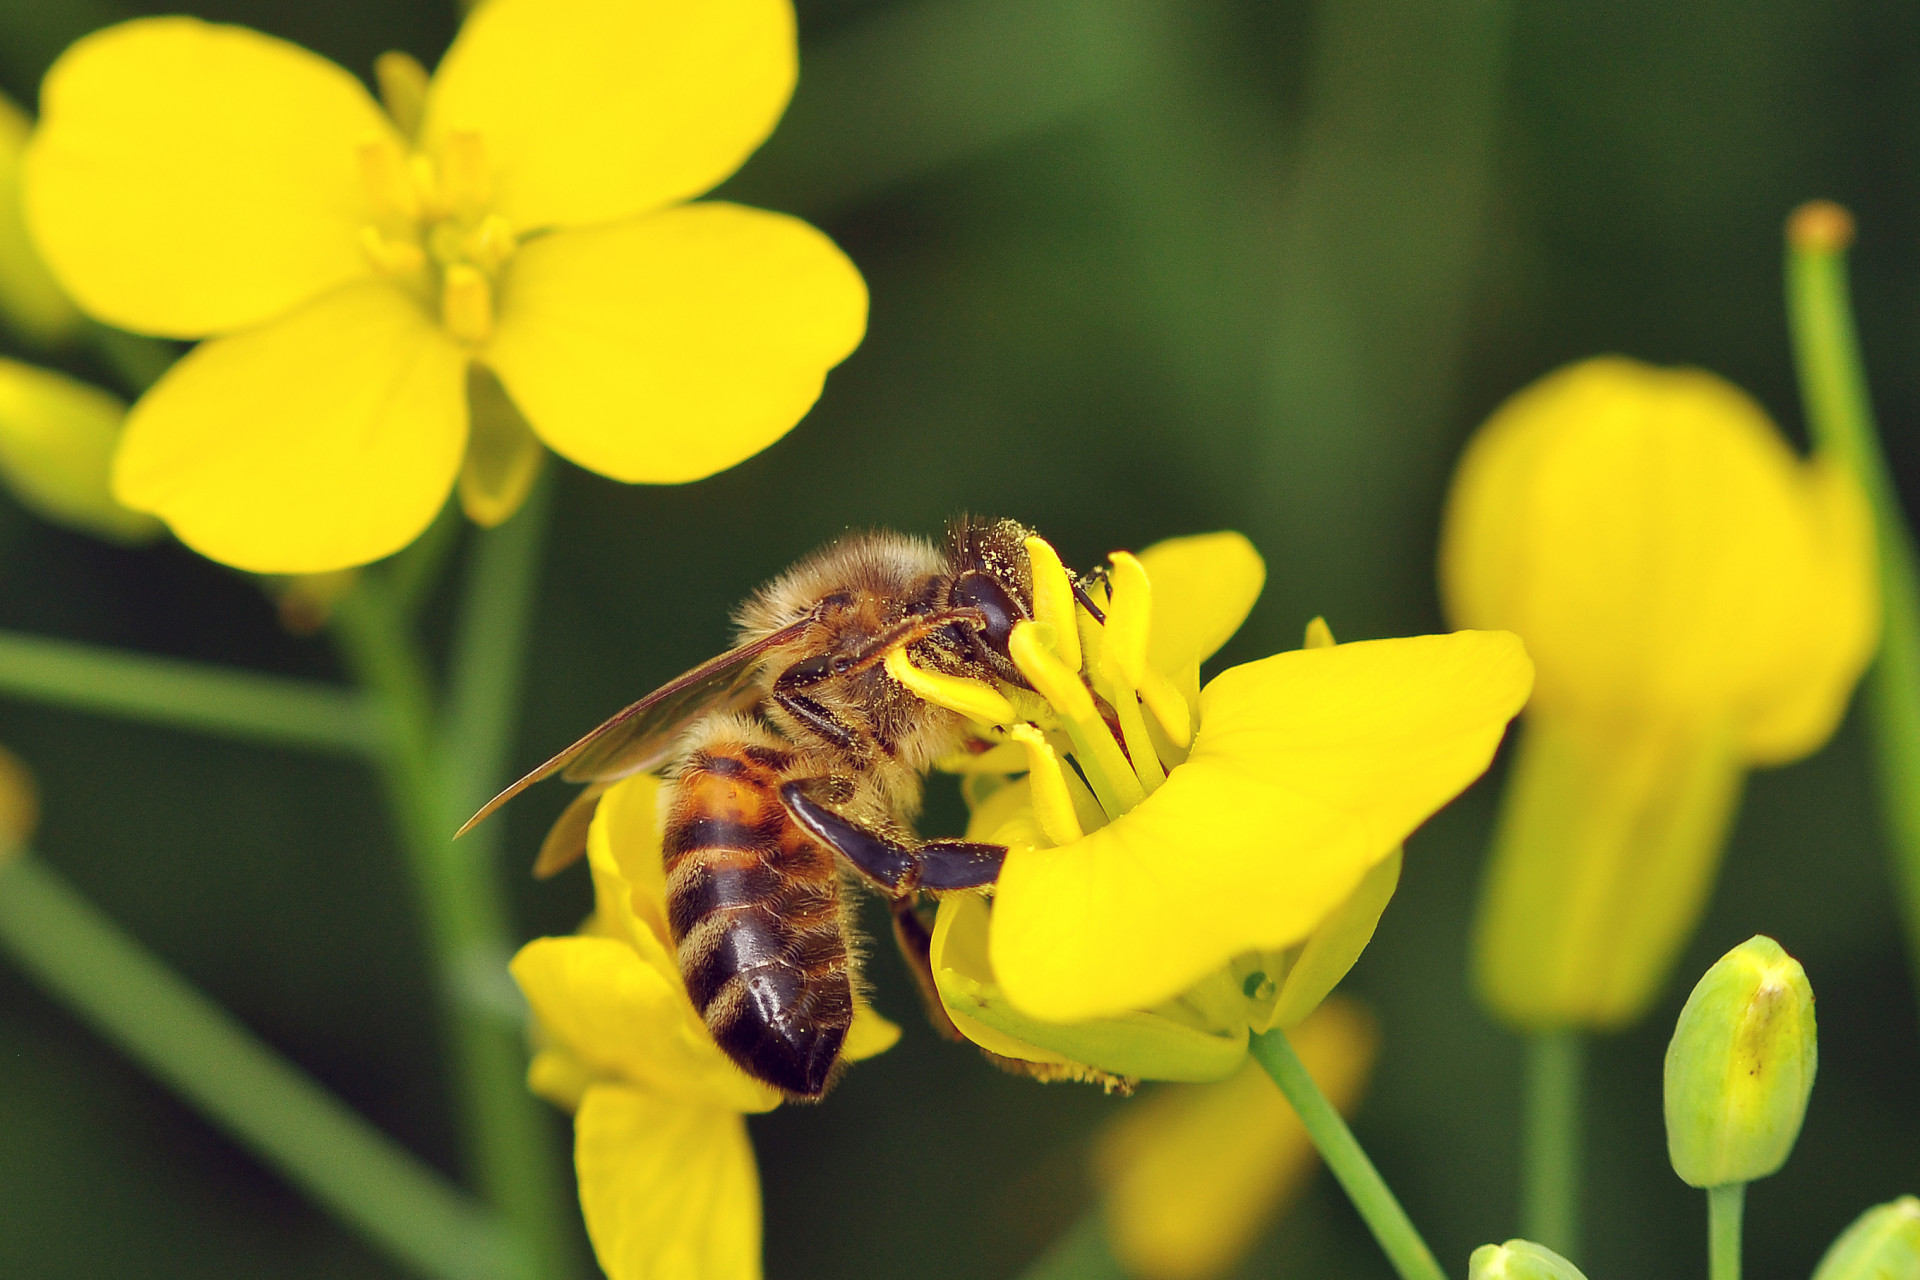 A honeybee forages for nectar and pollen from an oilseed rape flower